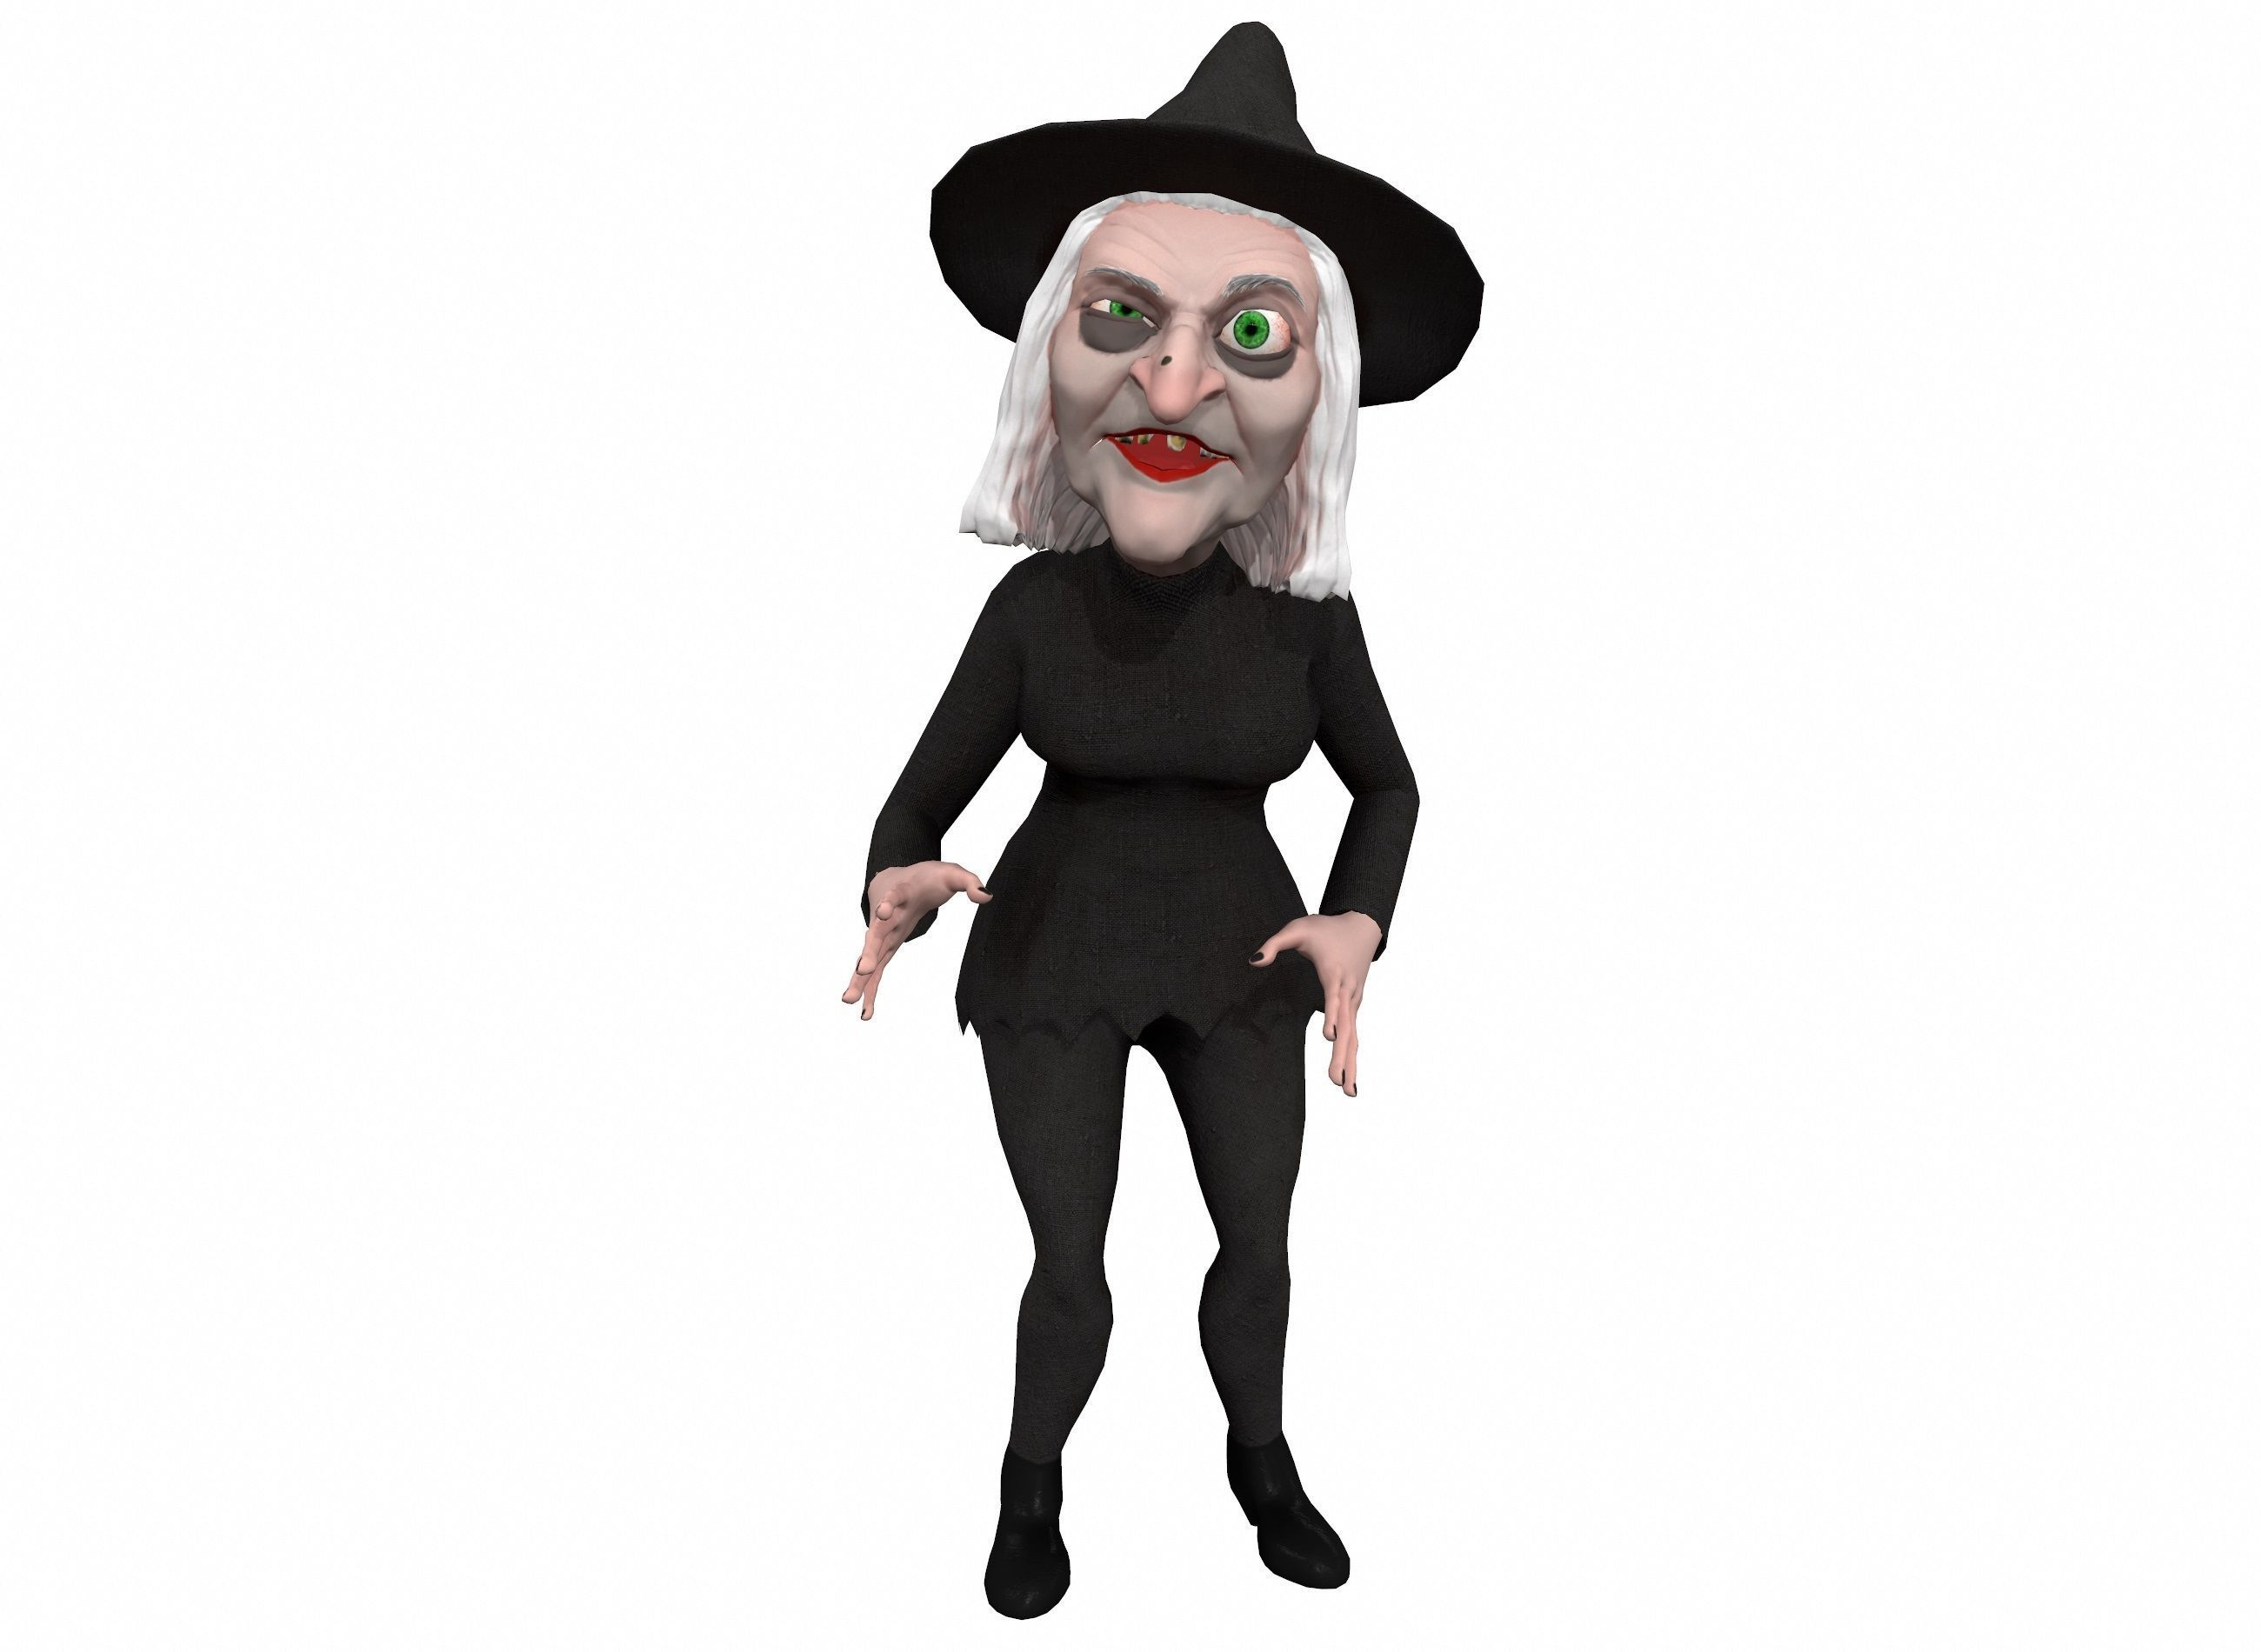 Cartoon witch rigged animated game ready 3D character